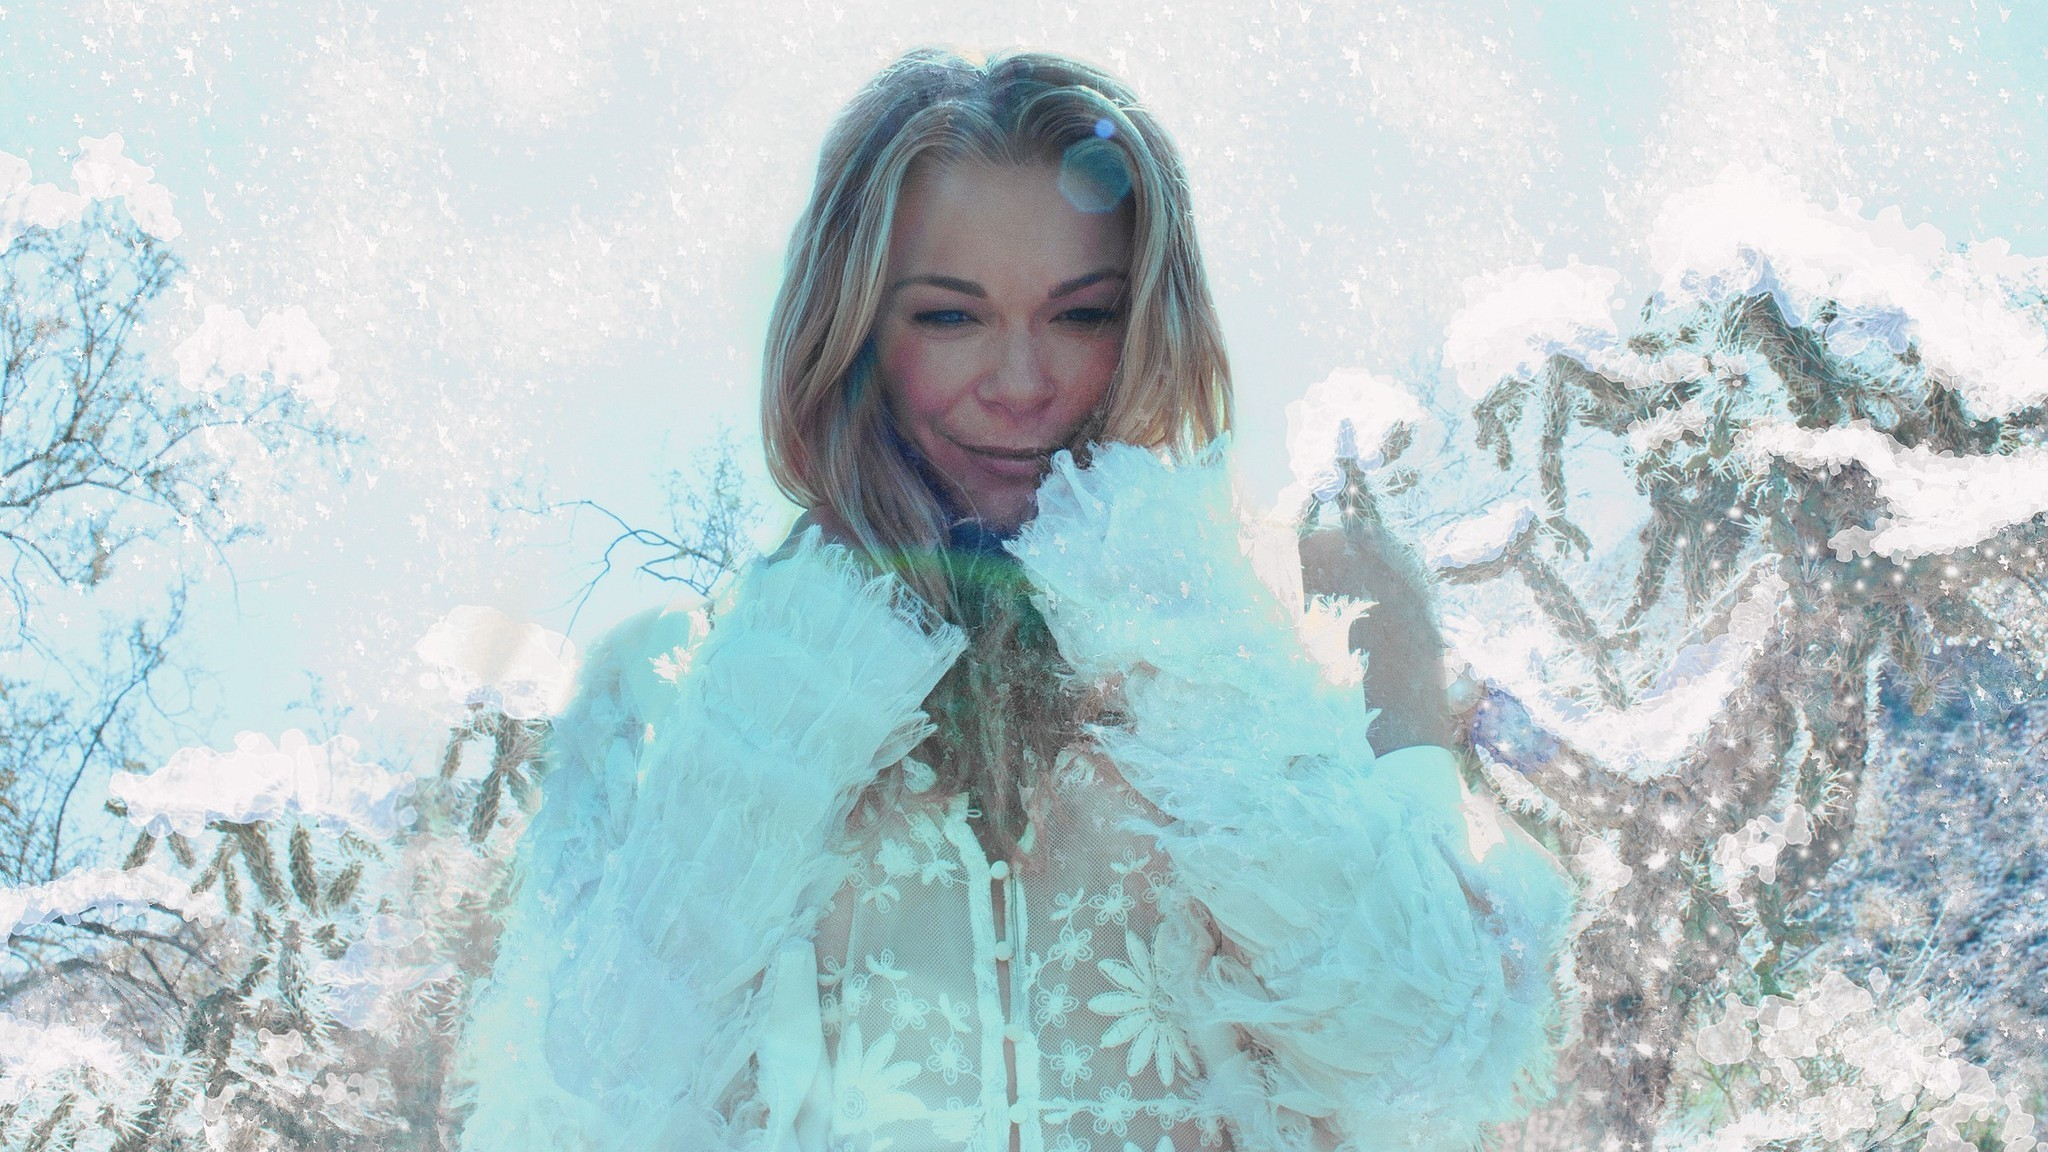 LeAnn Rimes performs a Christmas concert at Sands Bethlehem Event Center - The Morning Call